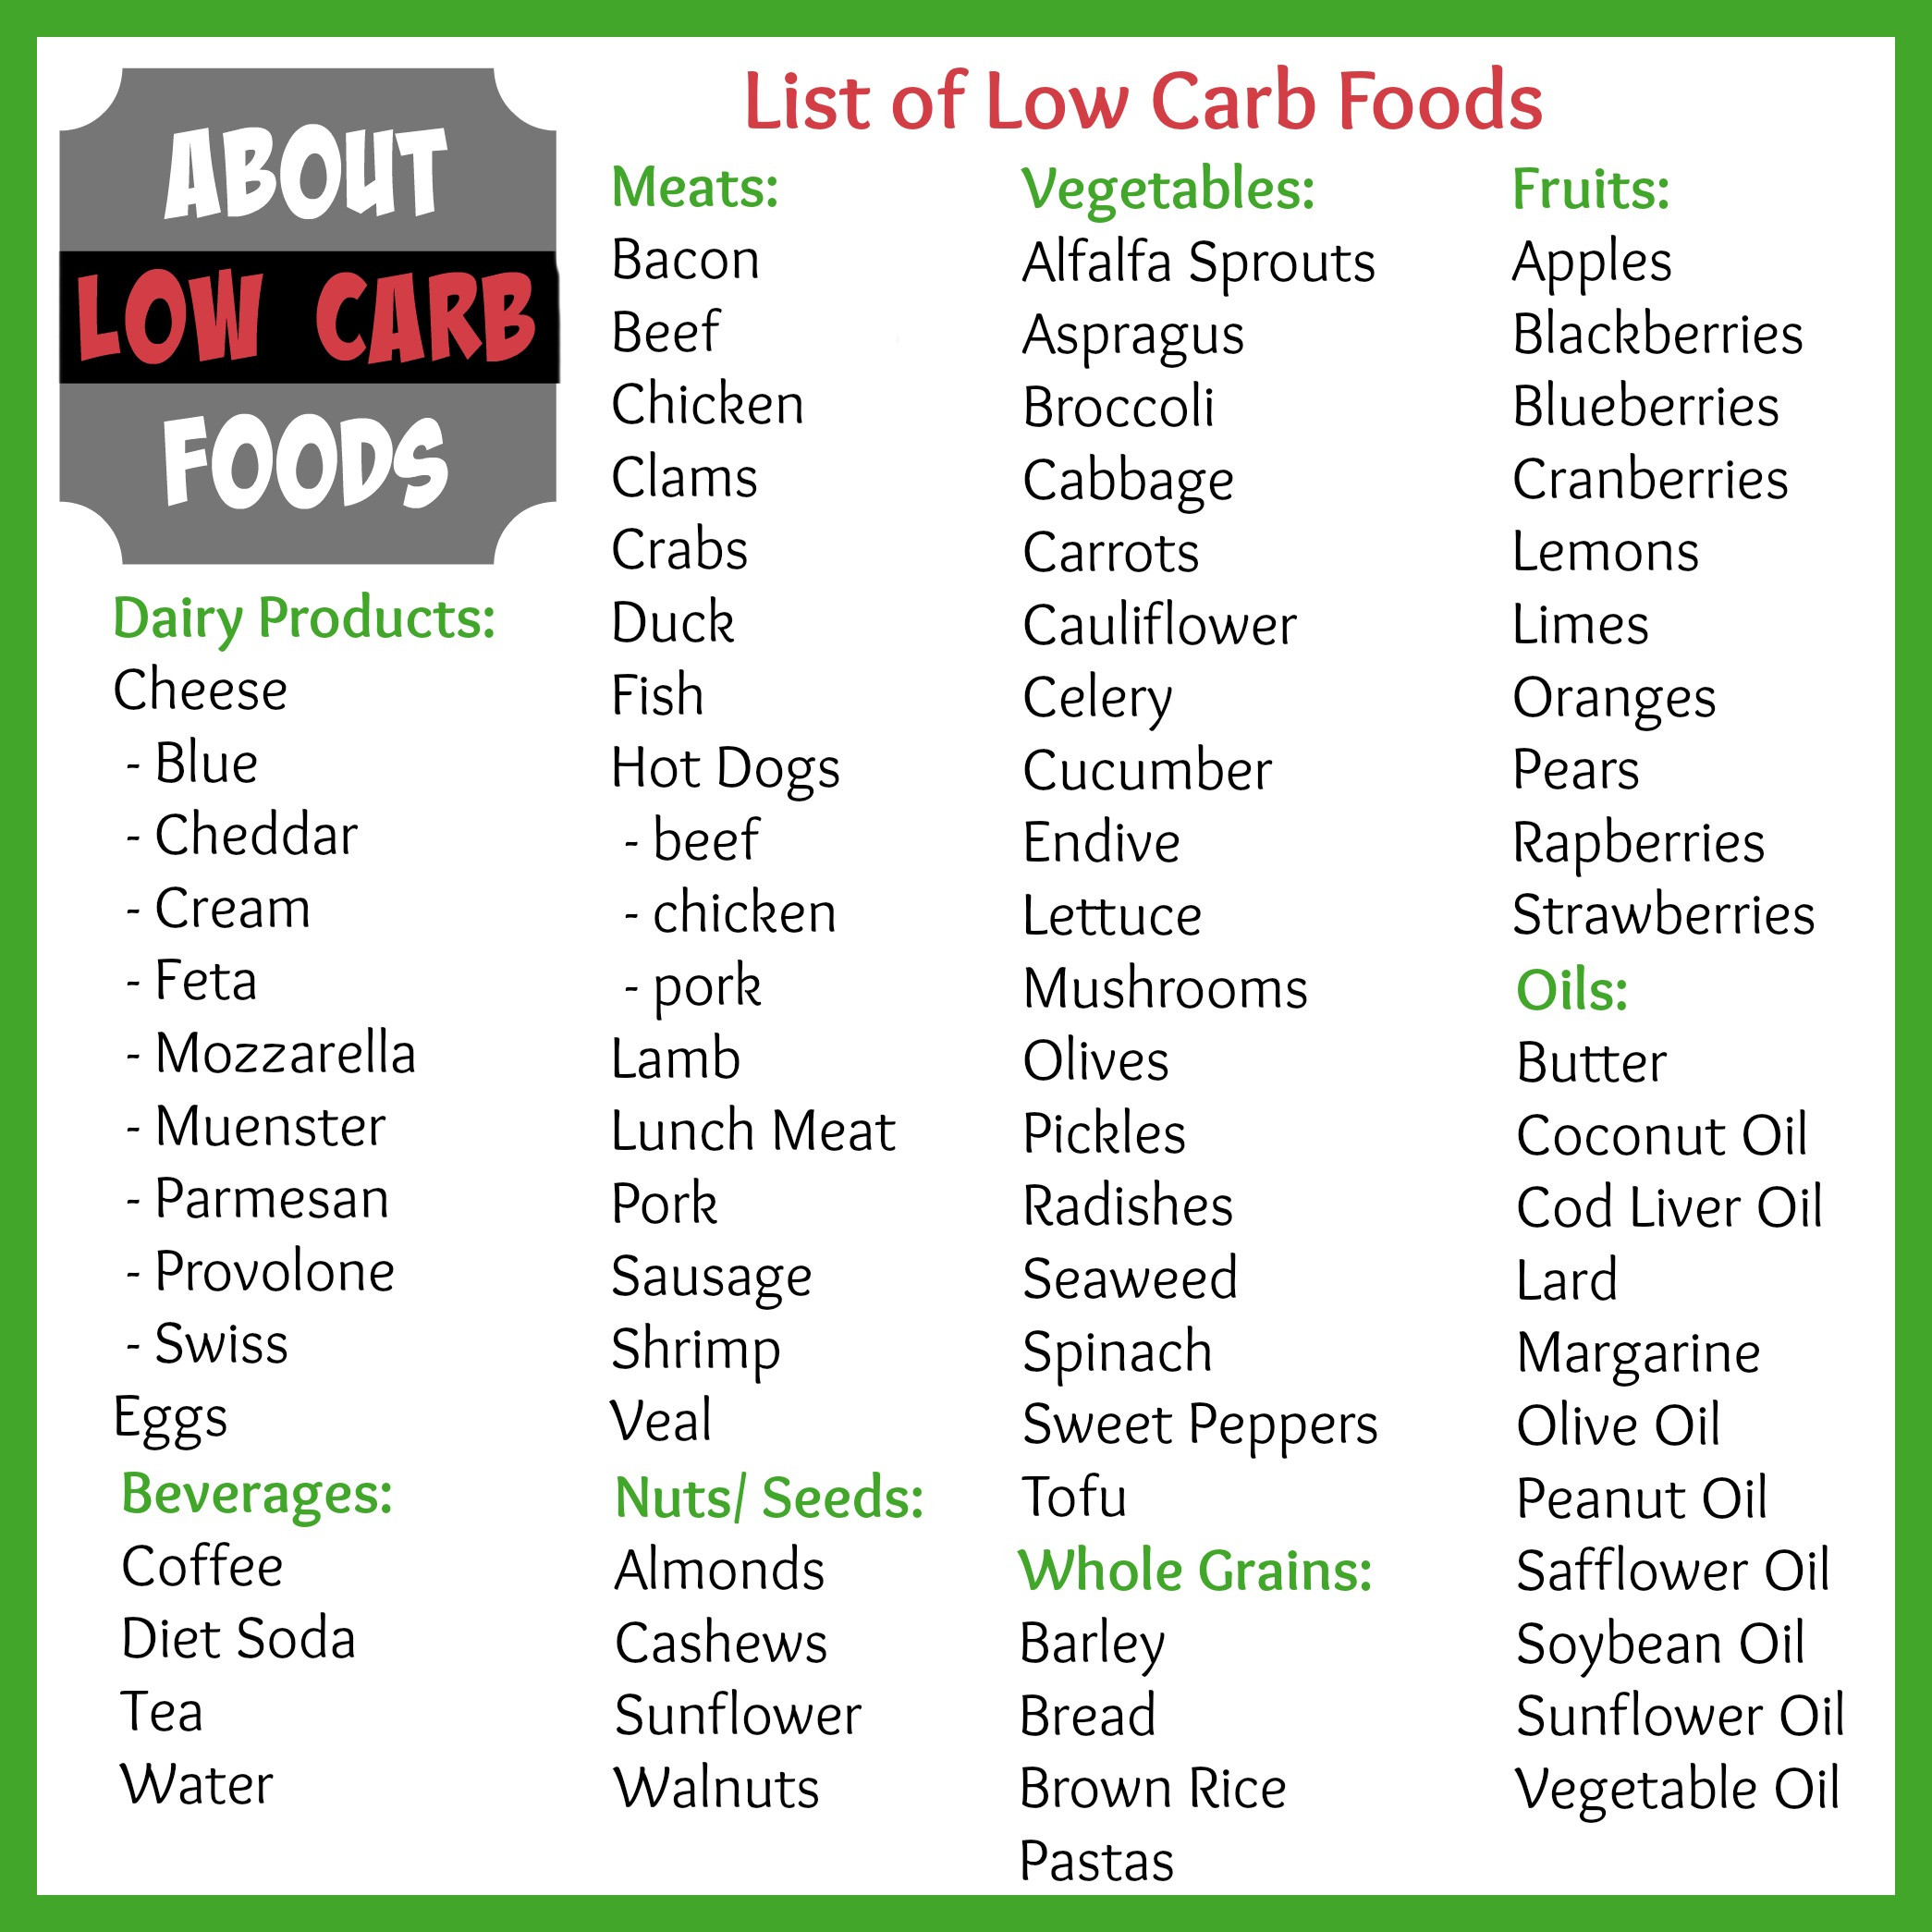 Carbohydrates Food List Low Carb Diets  Food t plan for weight loss low carb list printable 3